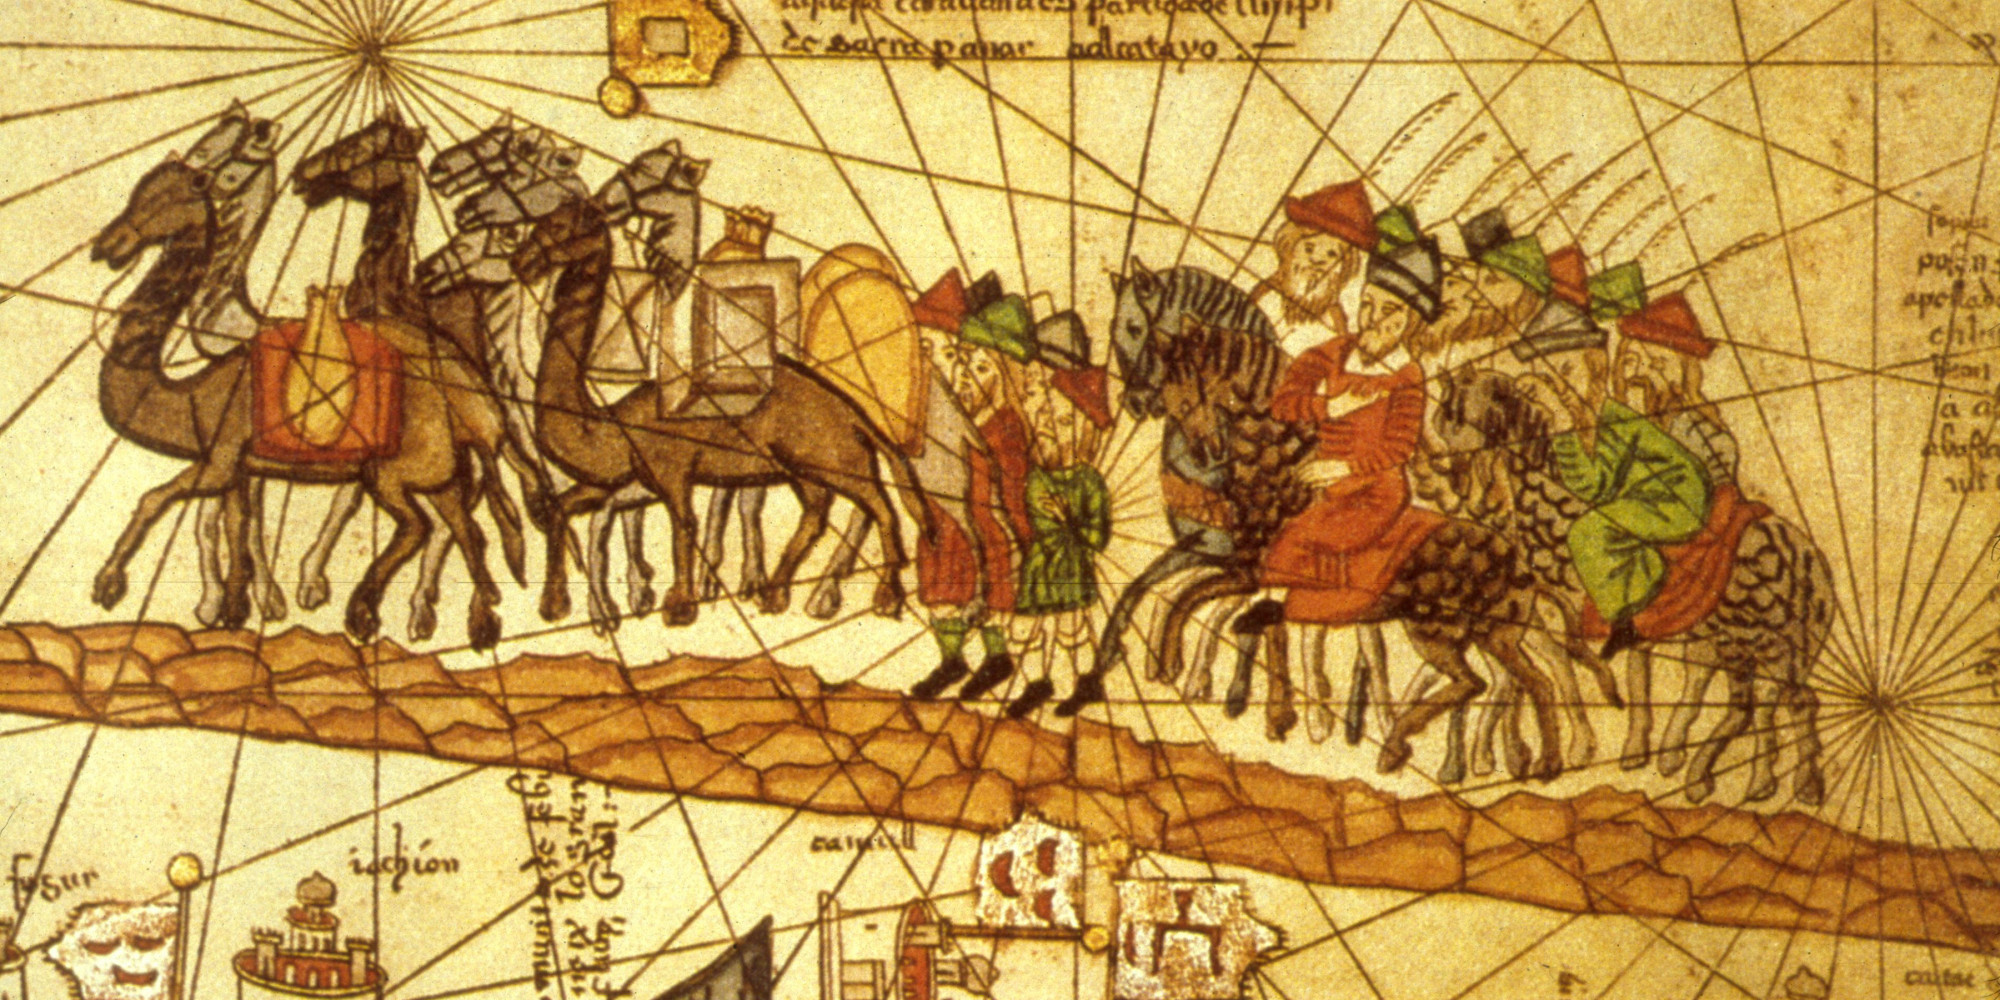 Illustrated map depicting the journey of the Venetian merchant Marco Polo (1254 - 1324) along the silk road to China. (Photo by MPI/Getty Images)